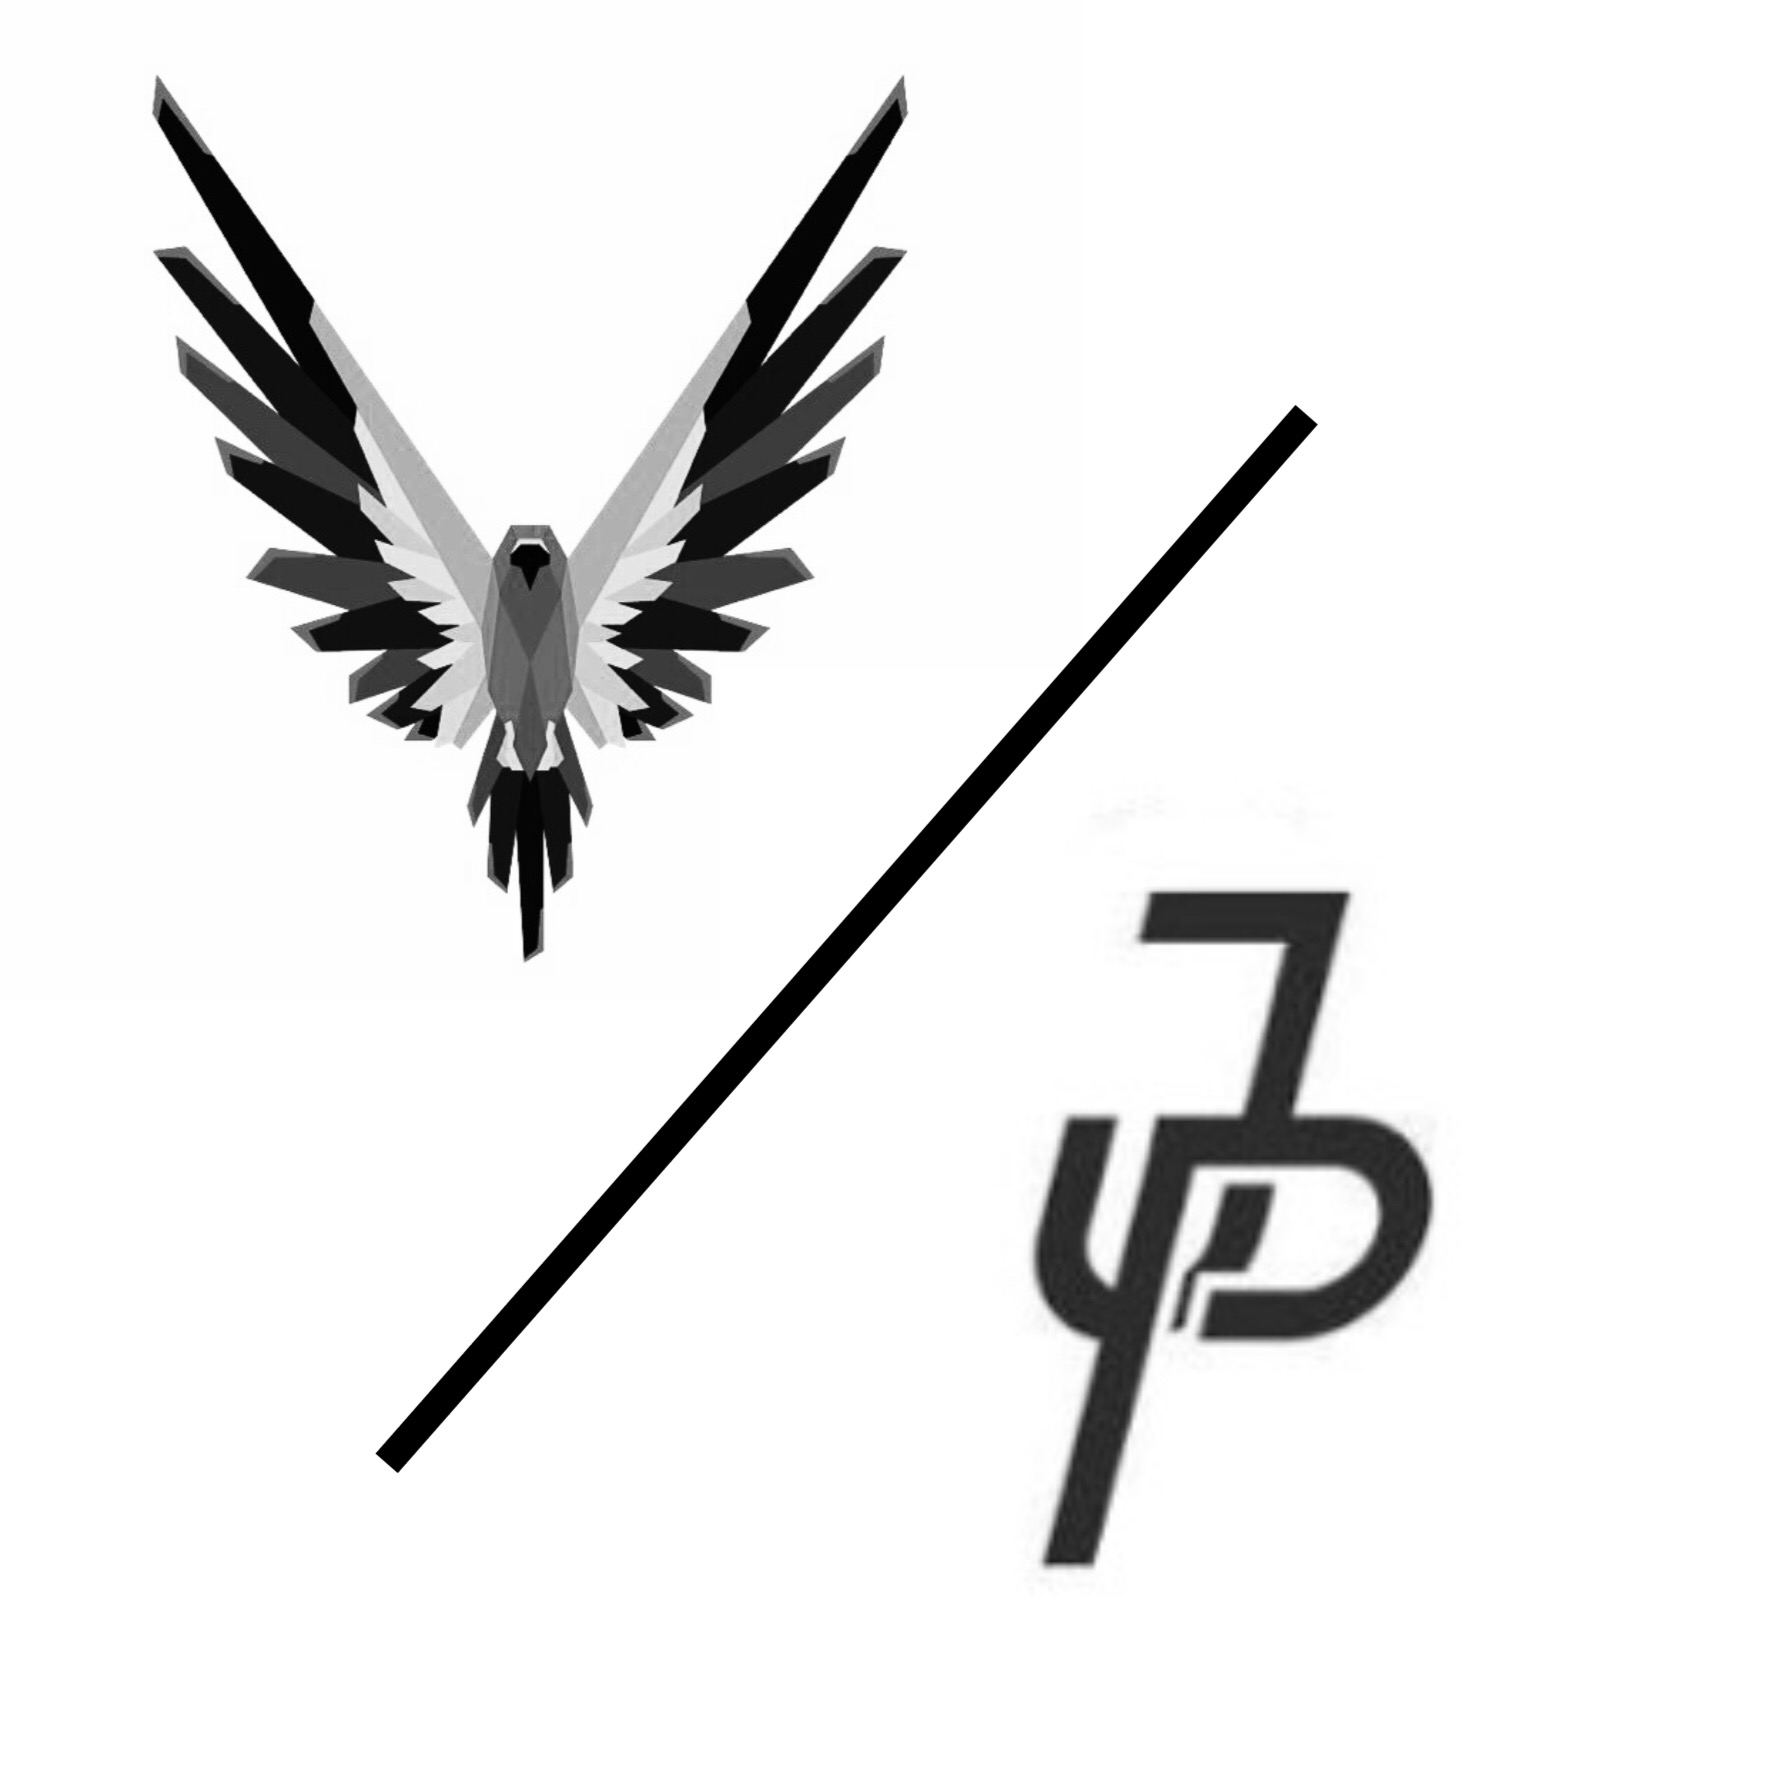 Maverick/Jake Paulers Merch Logo logangpaulers.